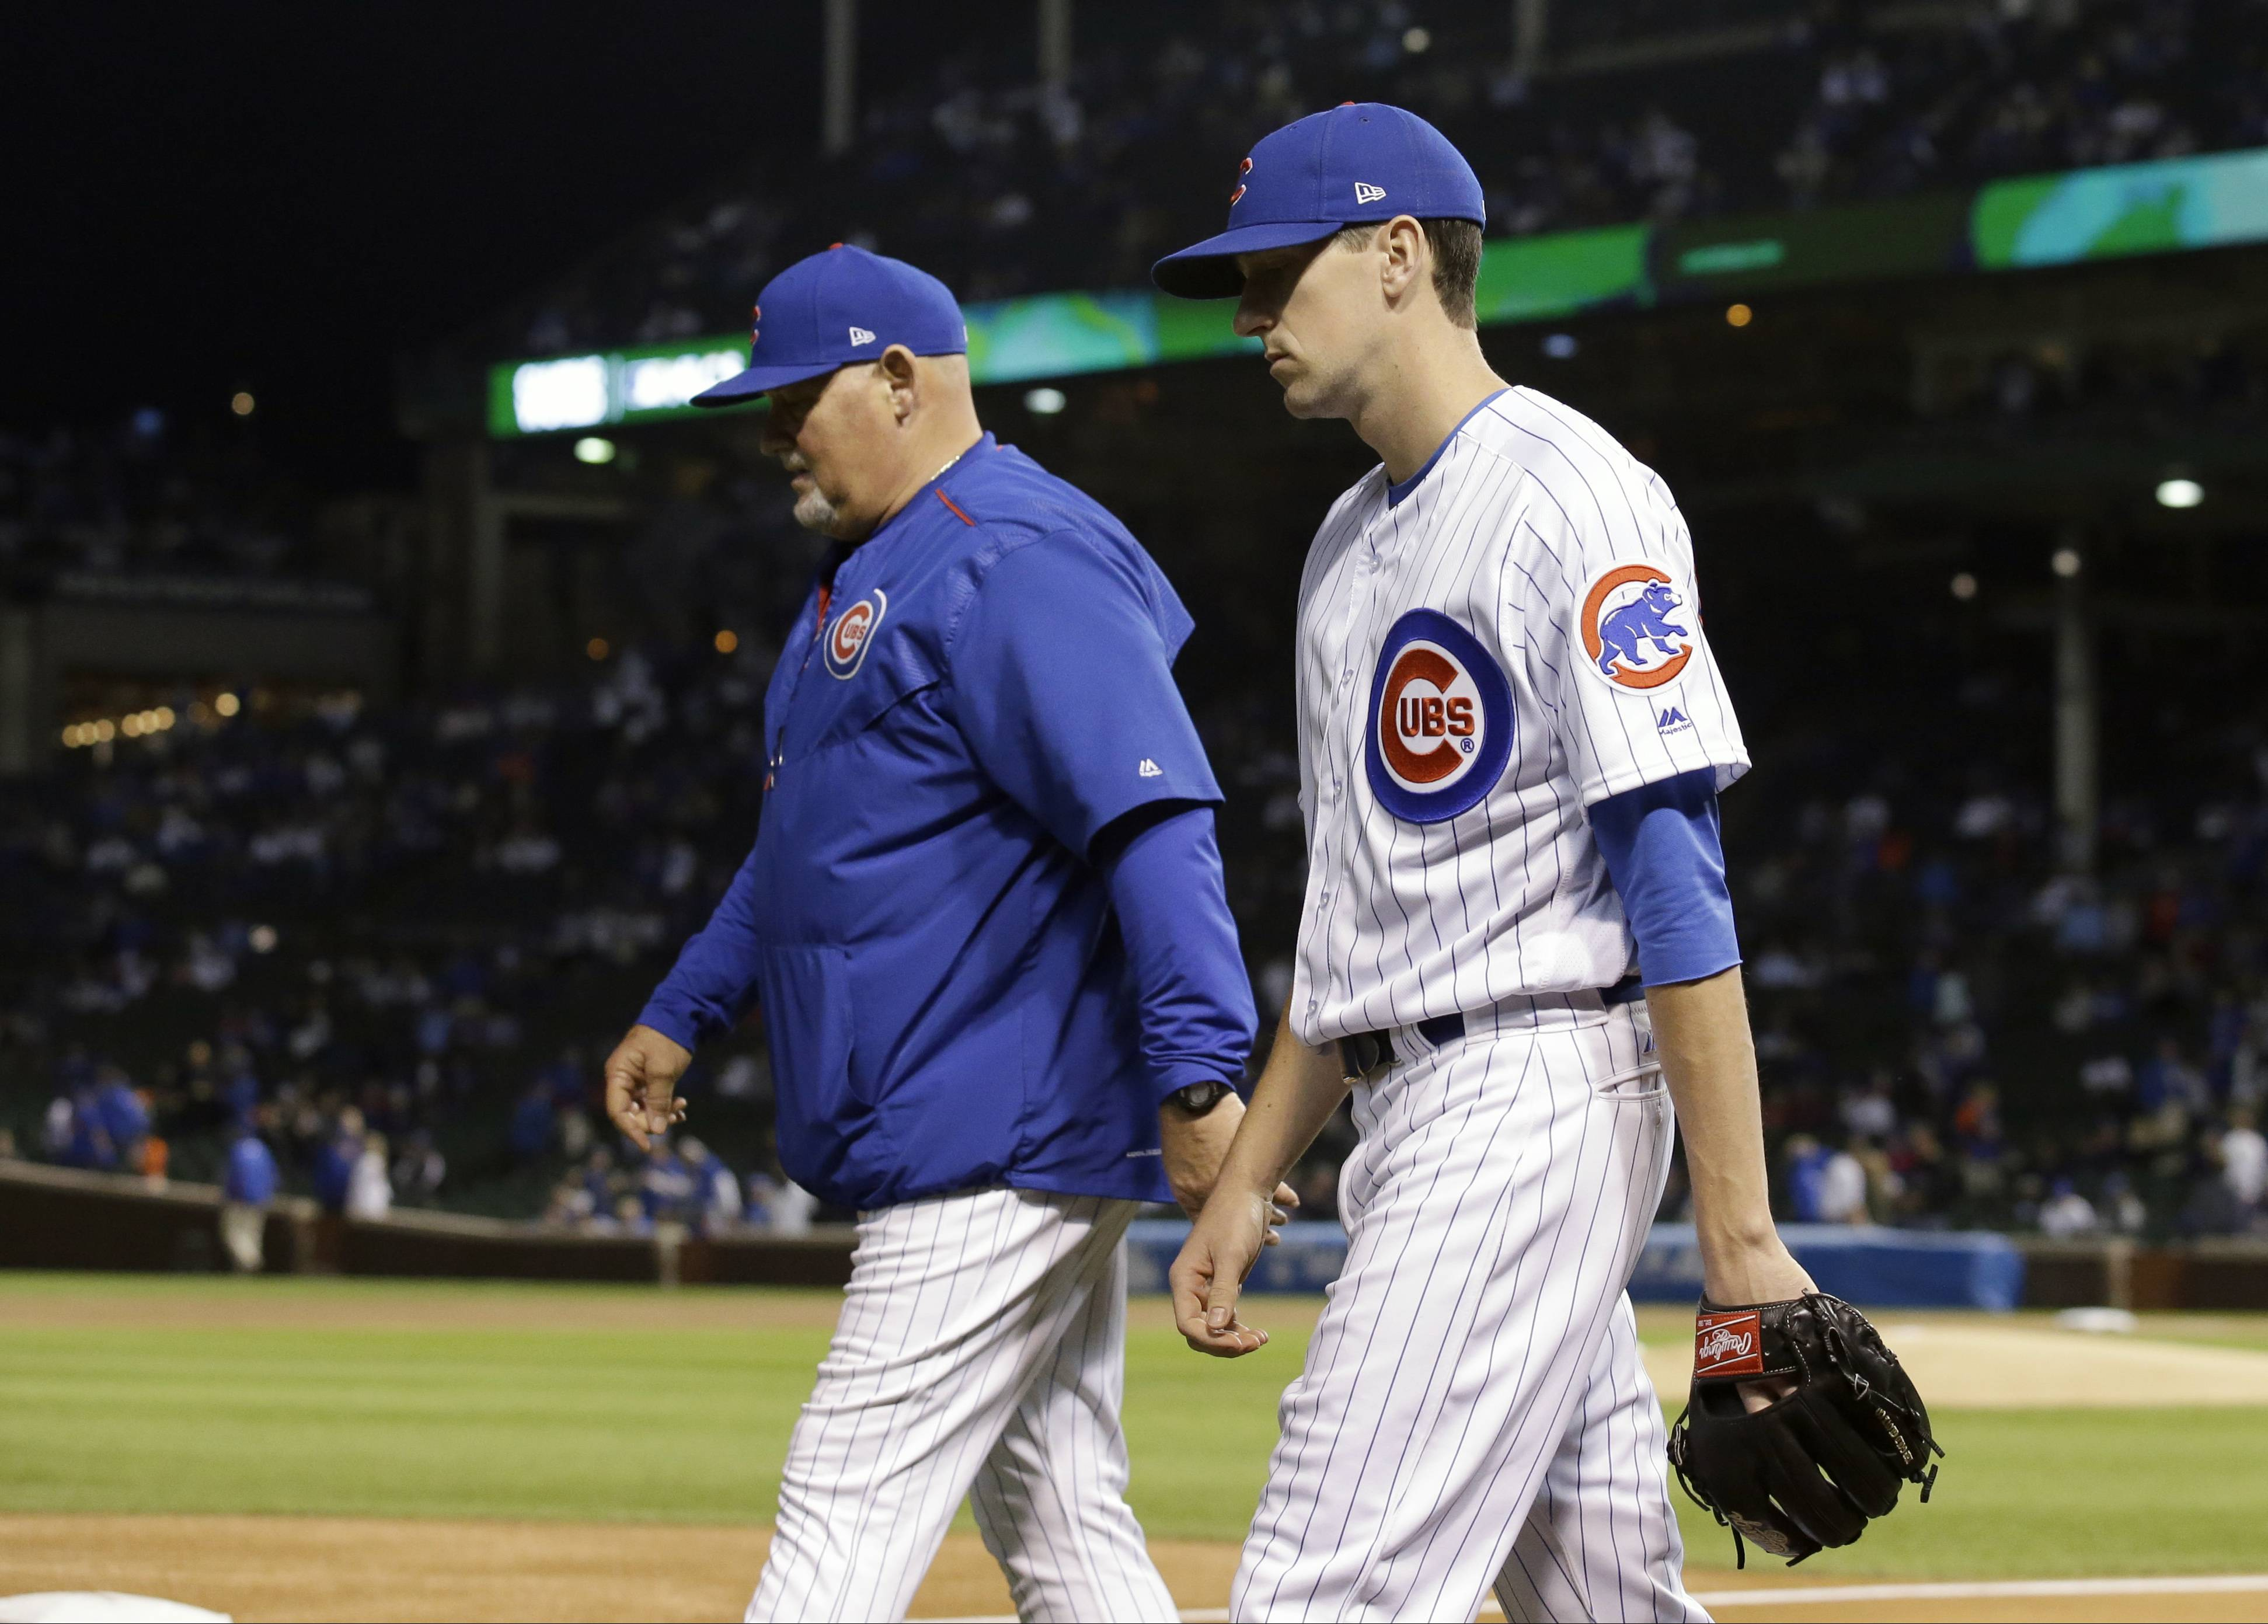 Did too many walks prompt Cubs to fire Bosio?